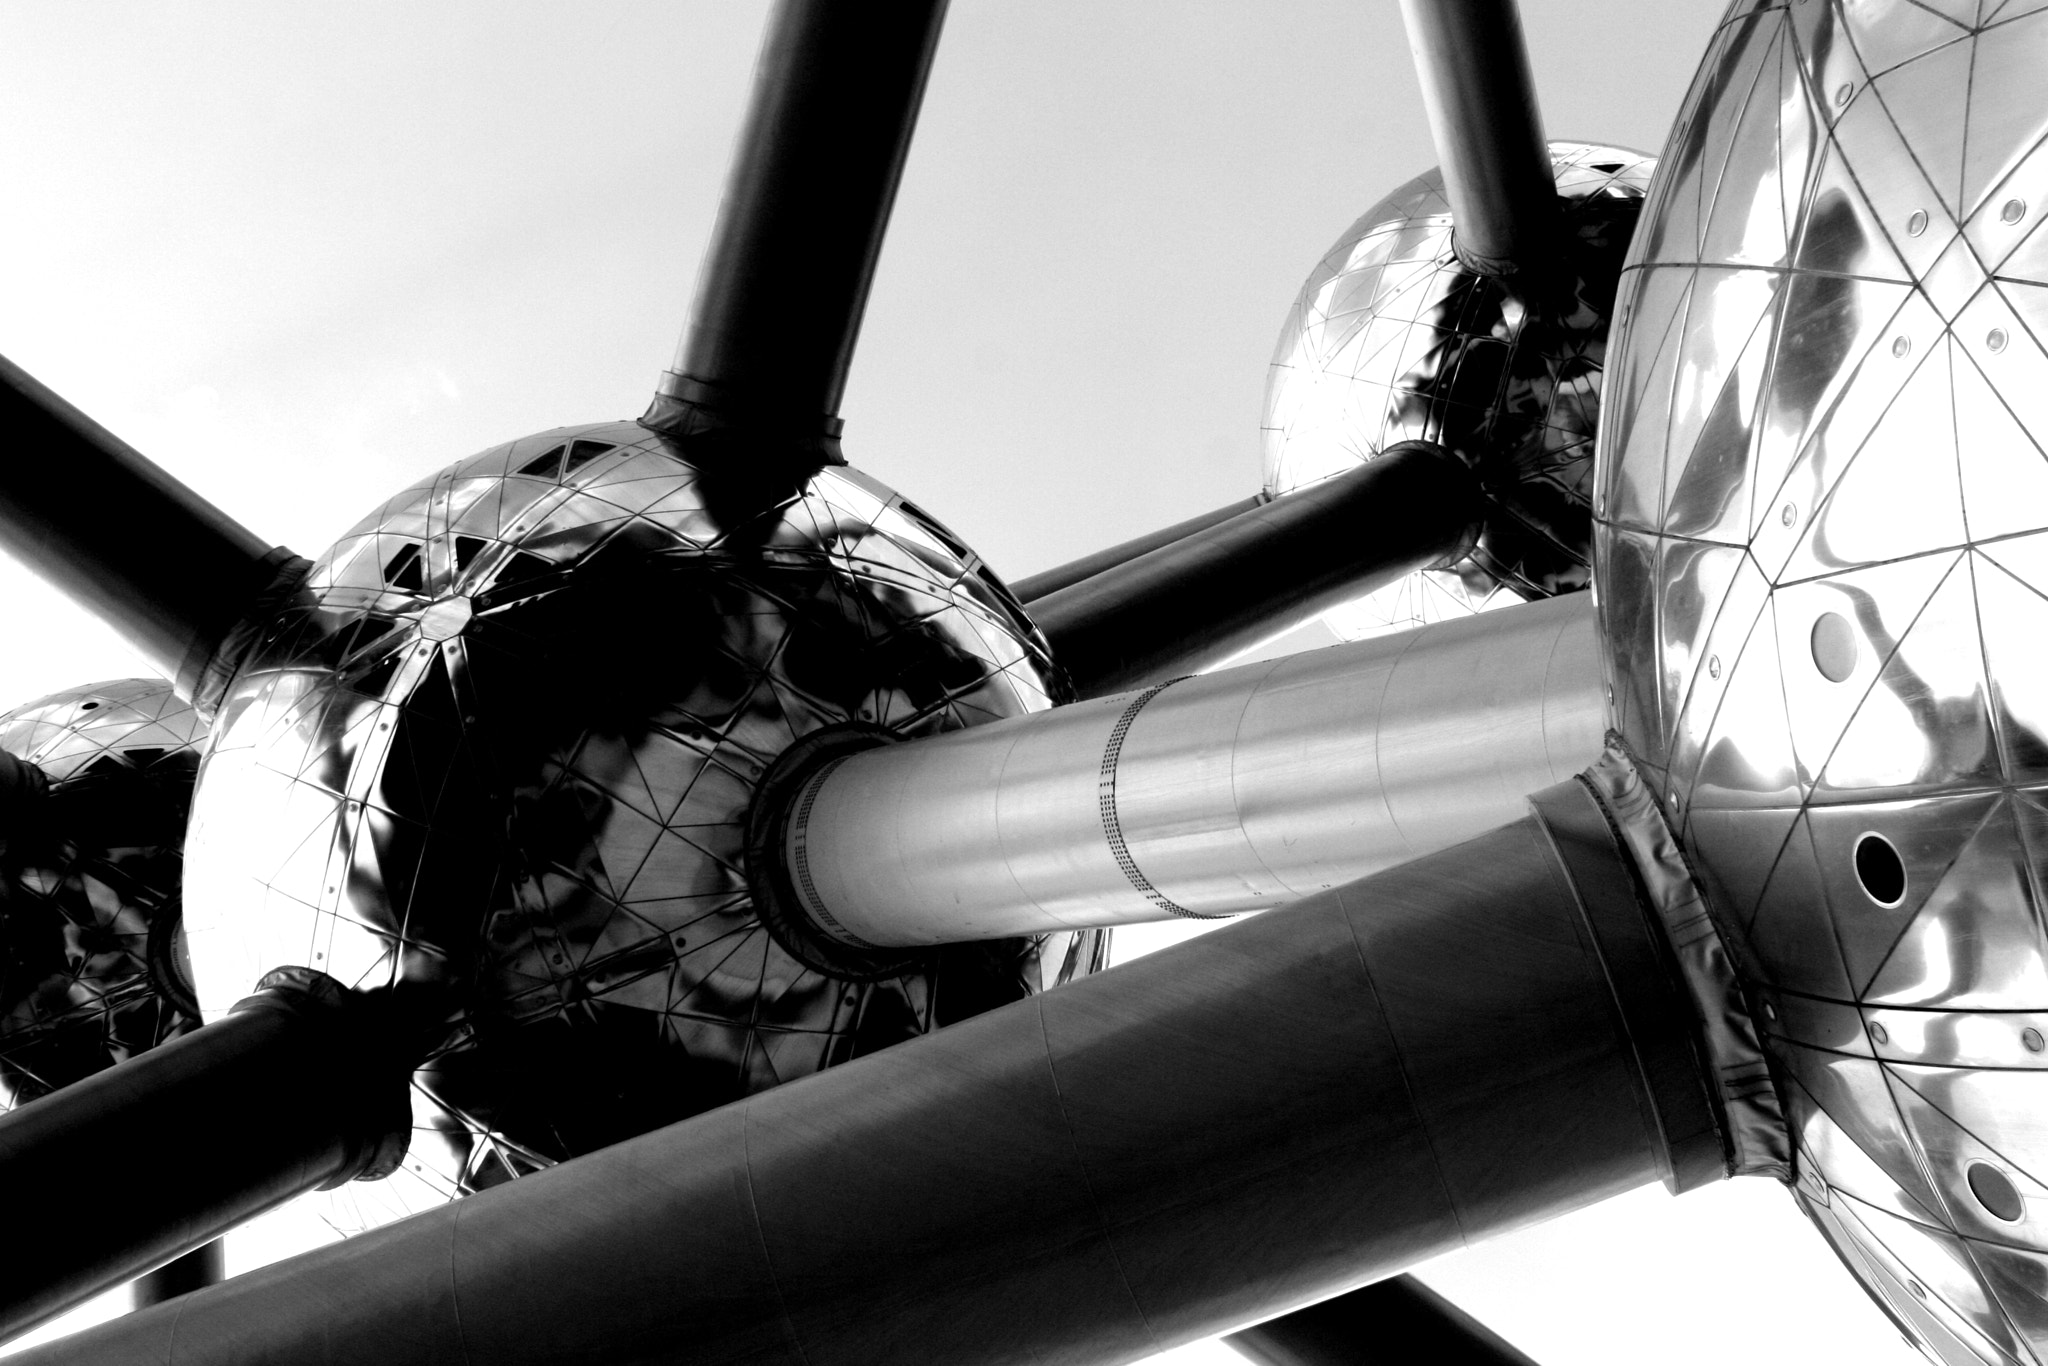 Photograph Atomium by Patrick Affourtit on 500px